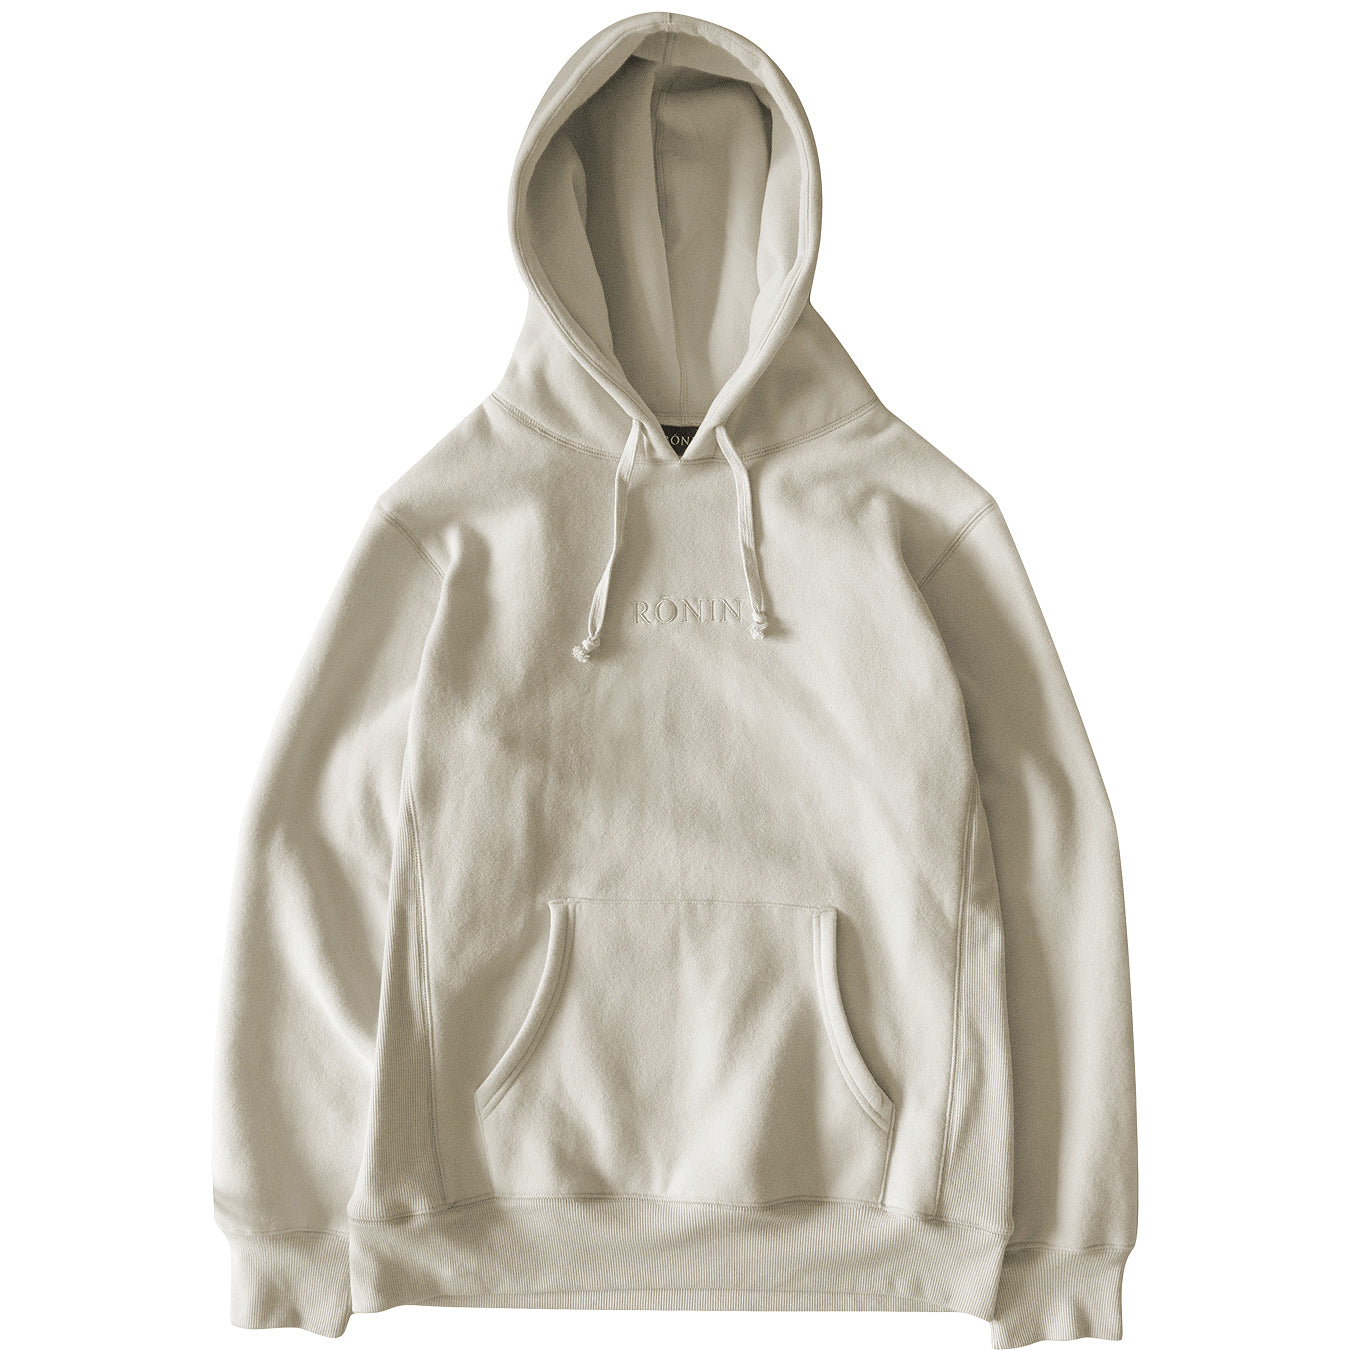 Tonal Embroidered Hoodie - Sand